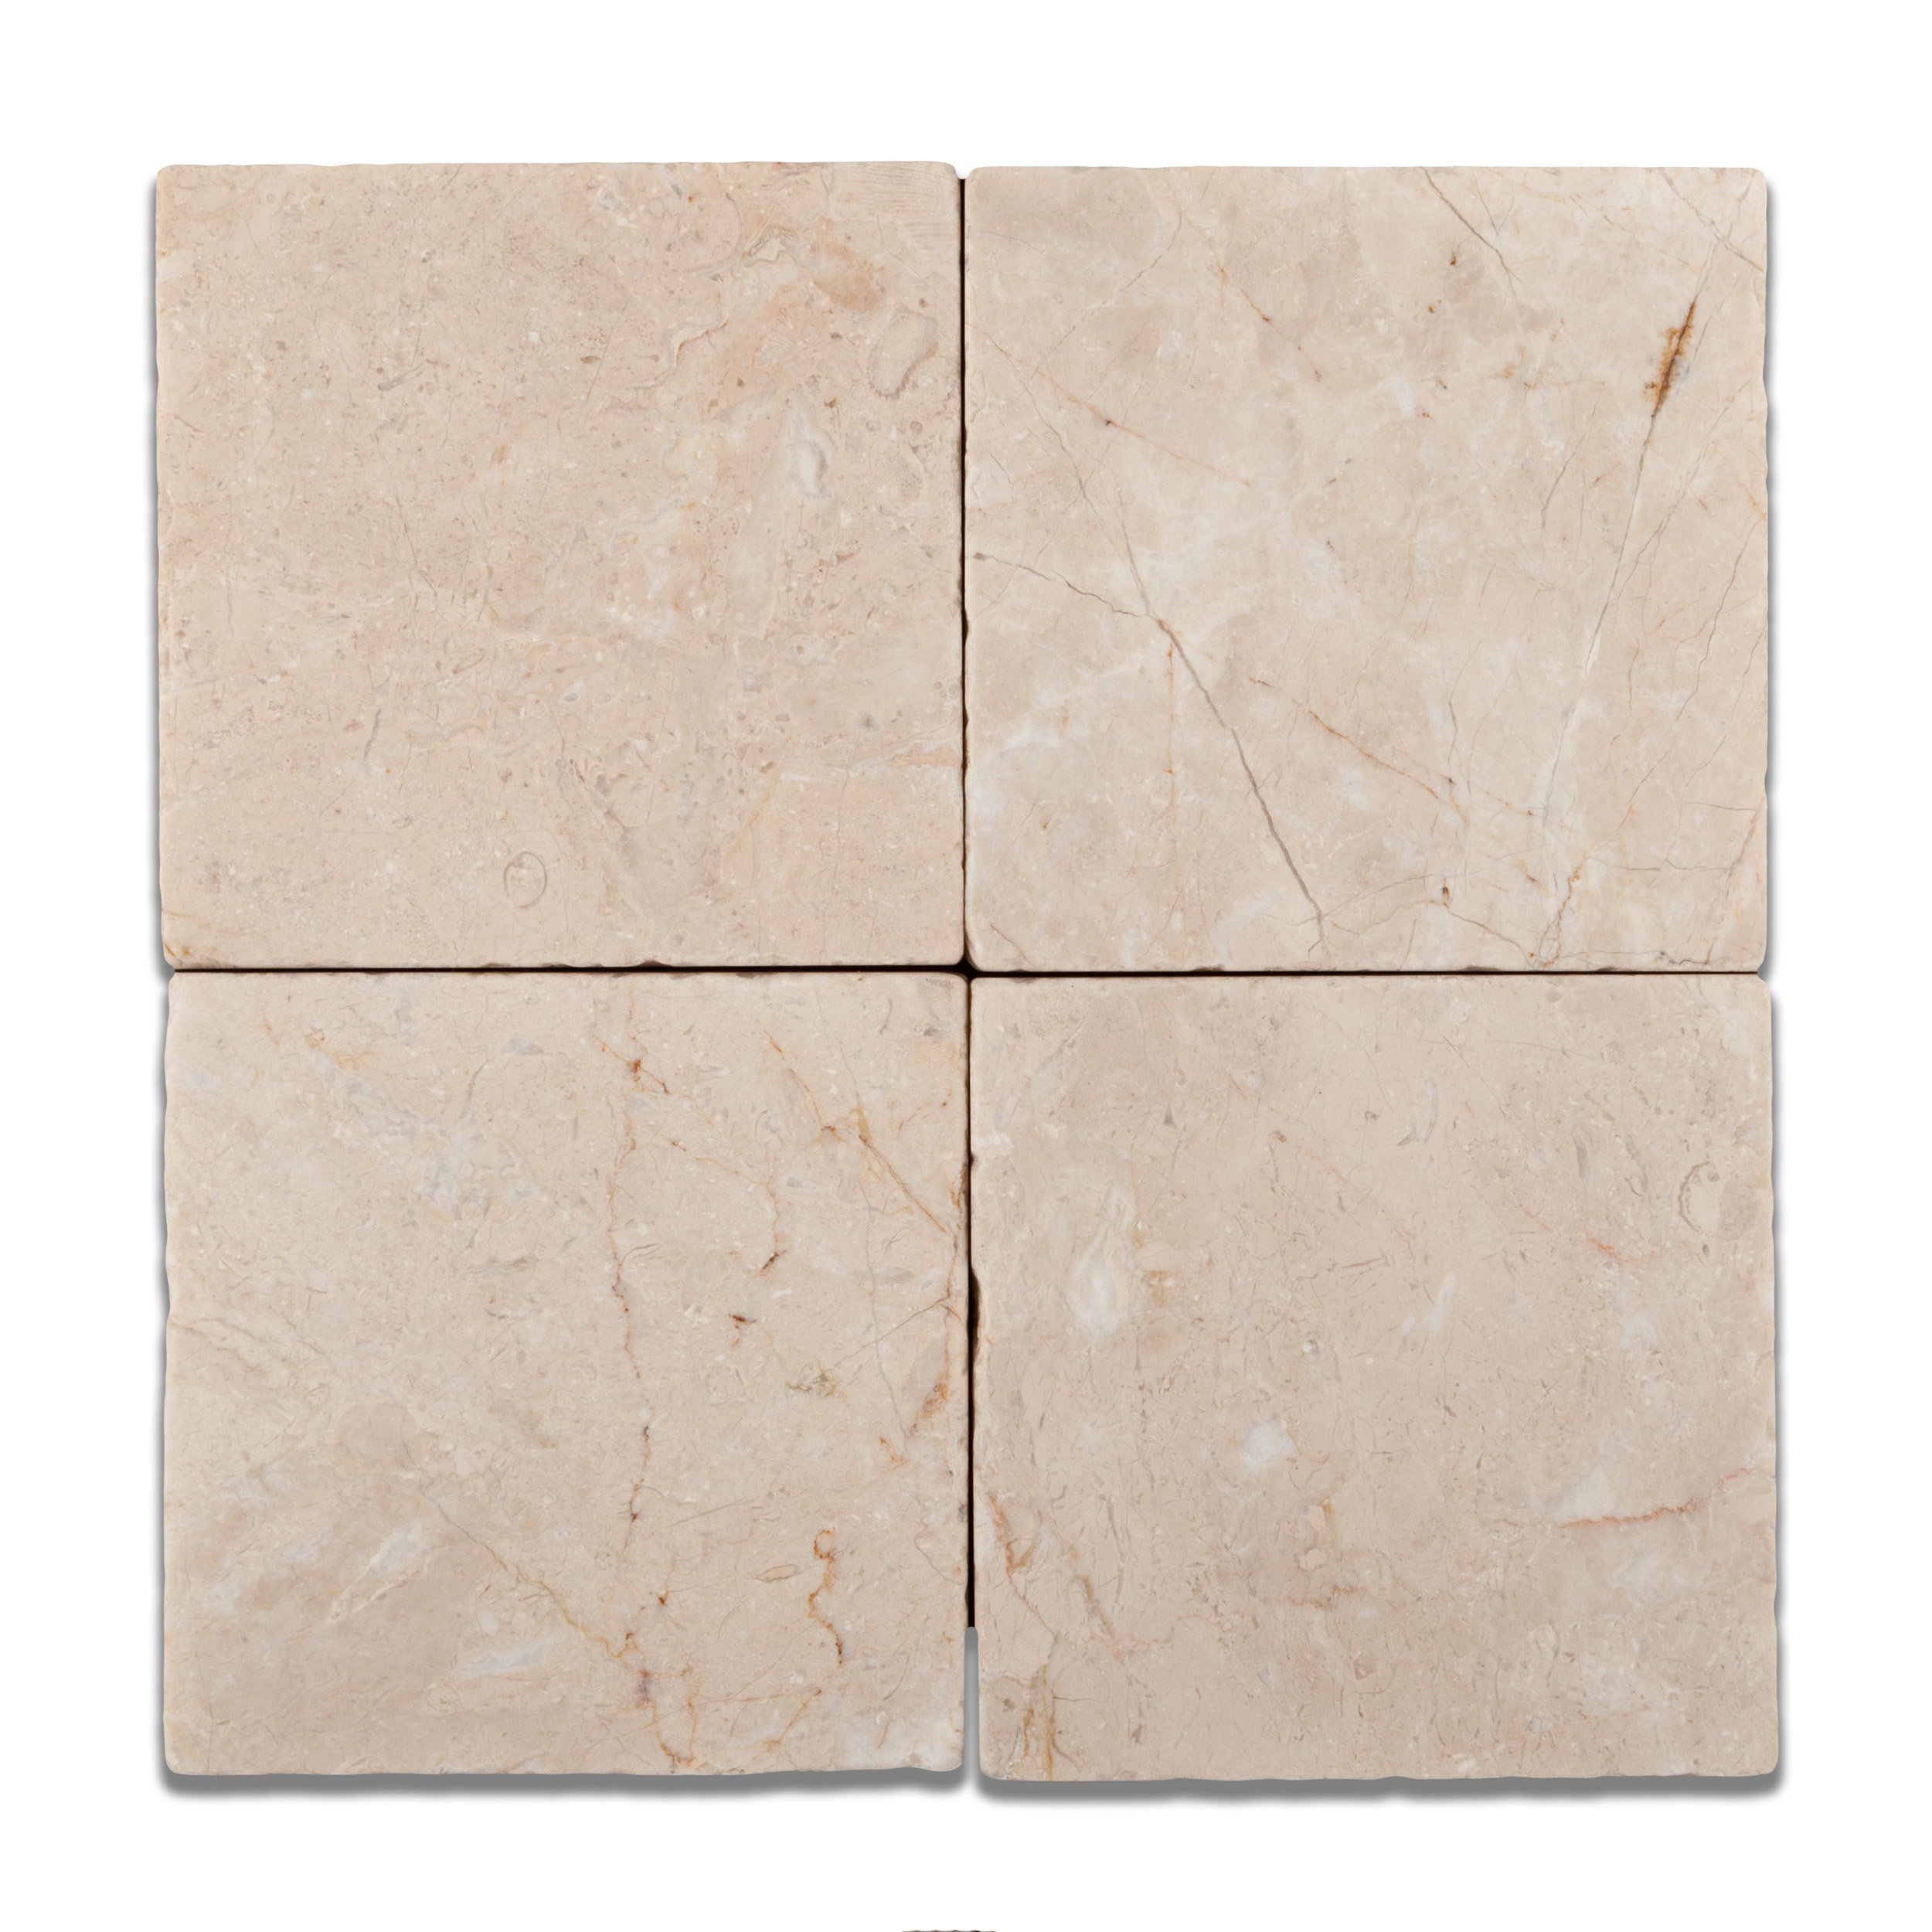 Bursa Beige / Sandy Beige Marble 6 X 6 Tumbled Field Tile - Box of 5 sq. ft.